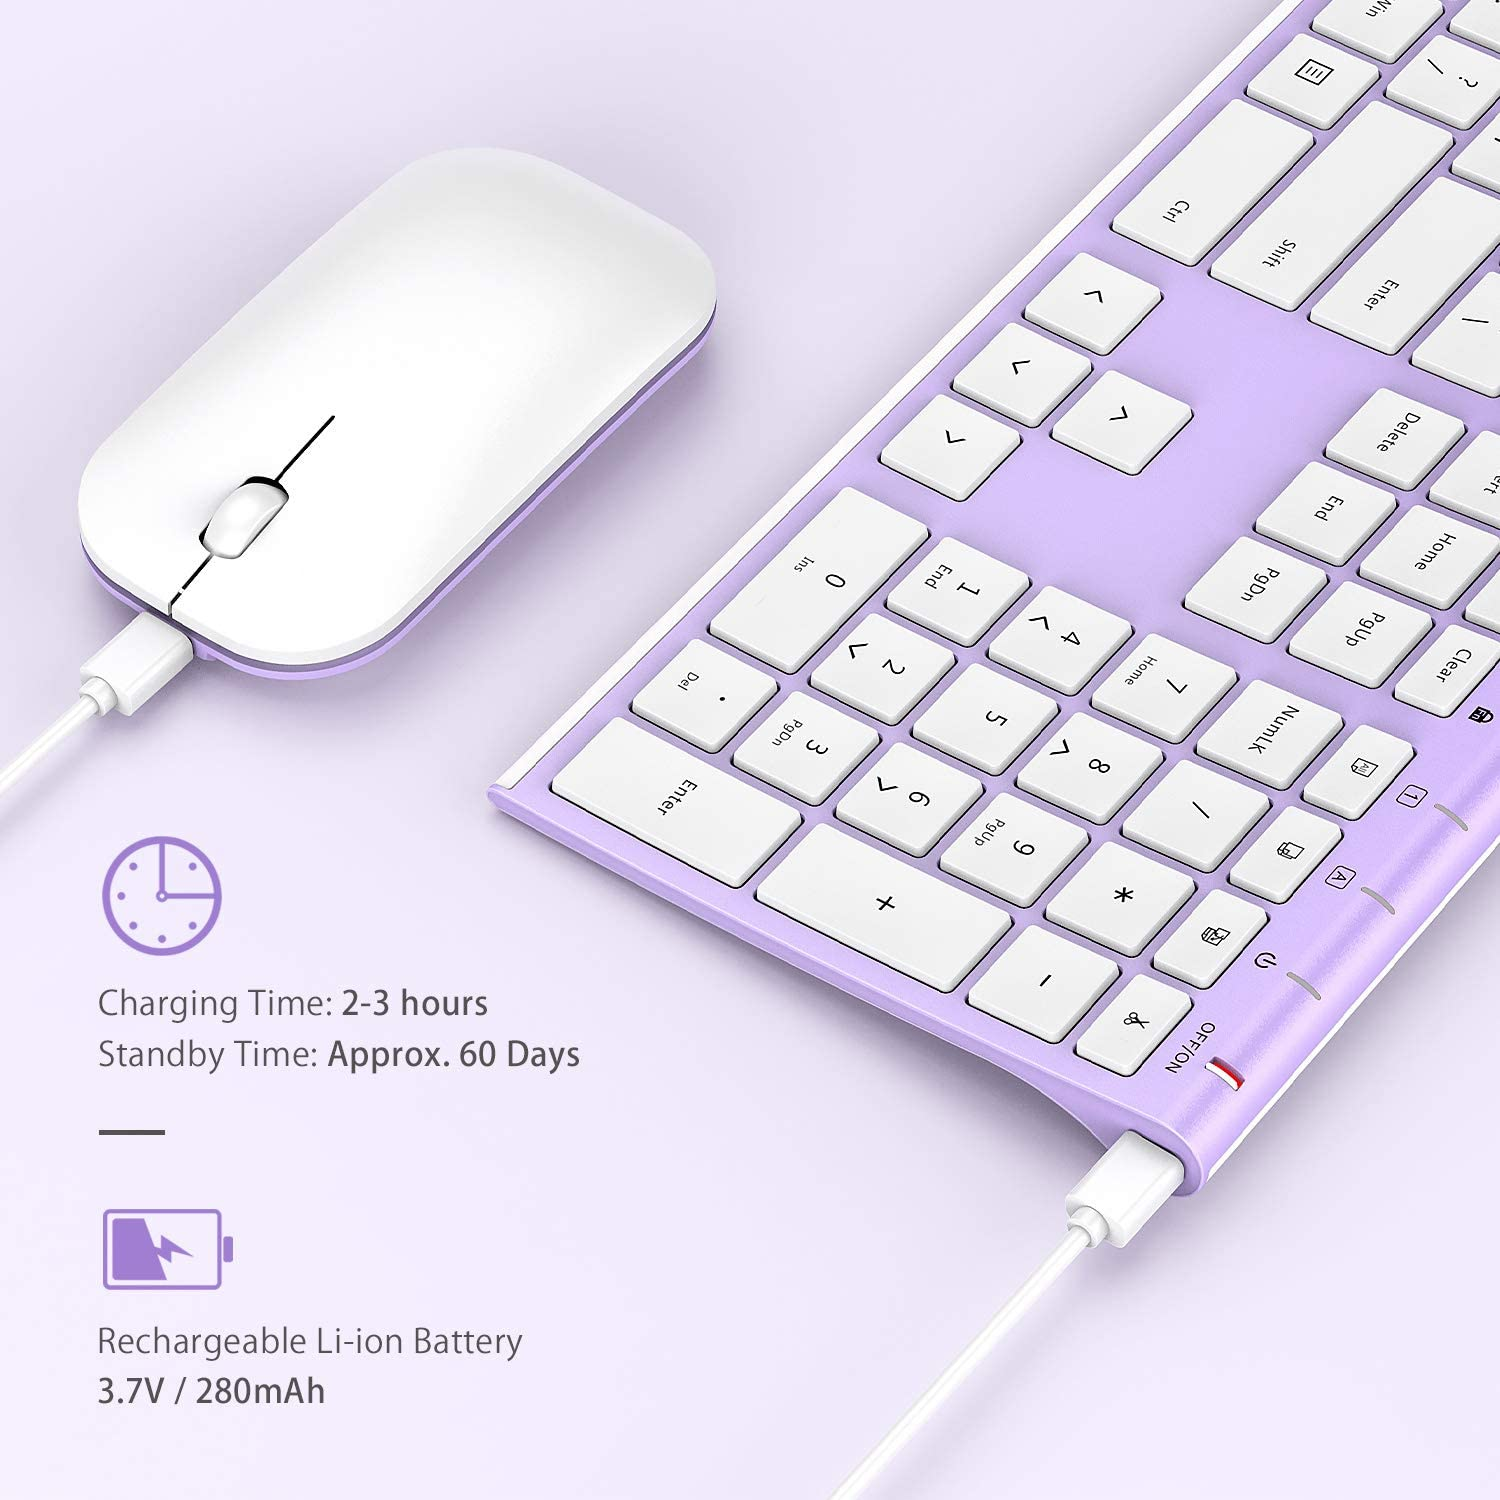 White and Purple Computer Jelly Comb 2.4GHz Ultra Slim Full Size Wireless Keyboard Mouse Combo for Laptop PC Windows OS Rechargeable Wireless Keyboard Mouse Notebook Desktop